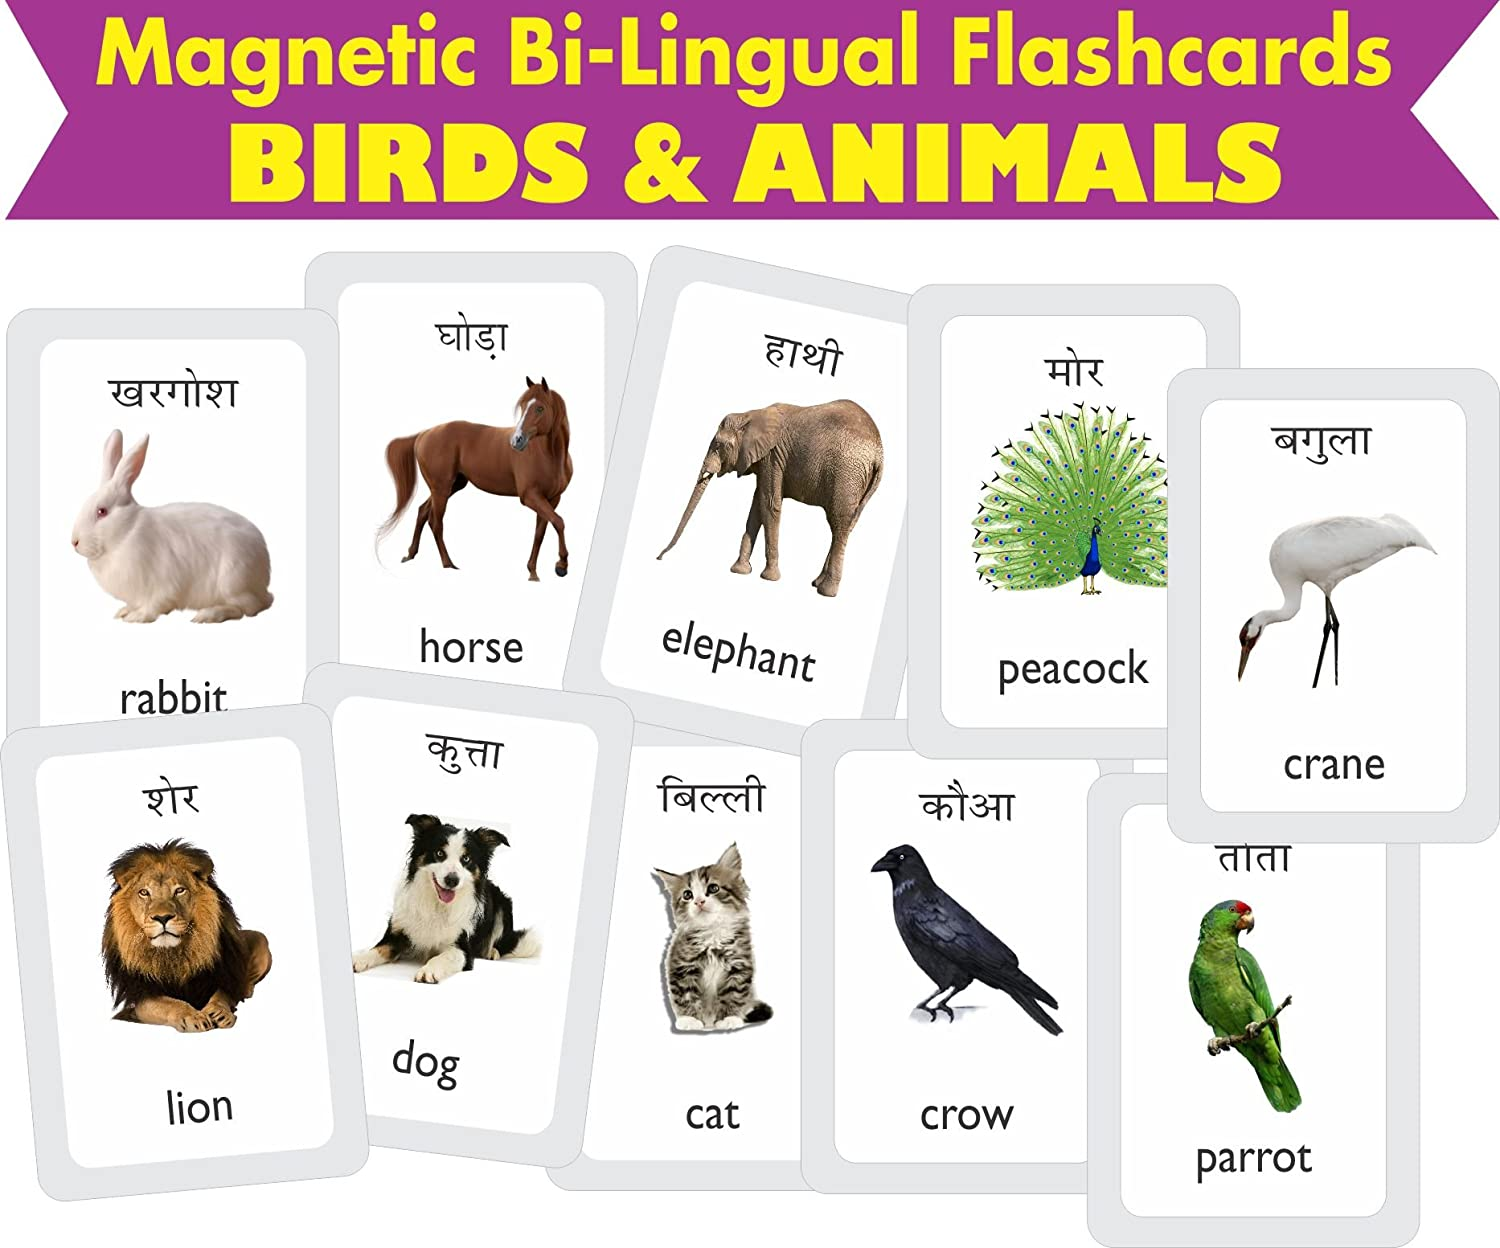 Buy Mfm Toys Birds Animals Bilingual Hindi English Magnetic Flashcards Online At Low Prices In India Amazon In